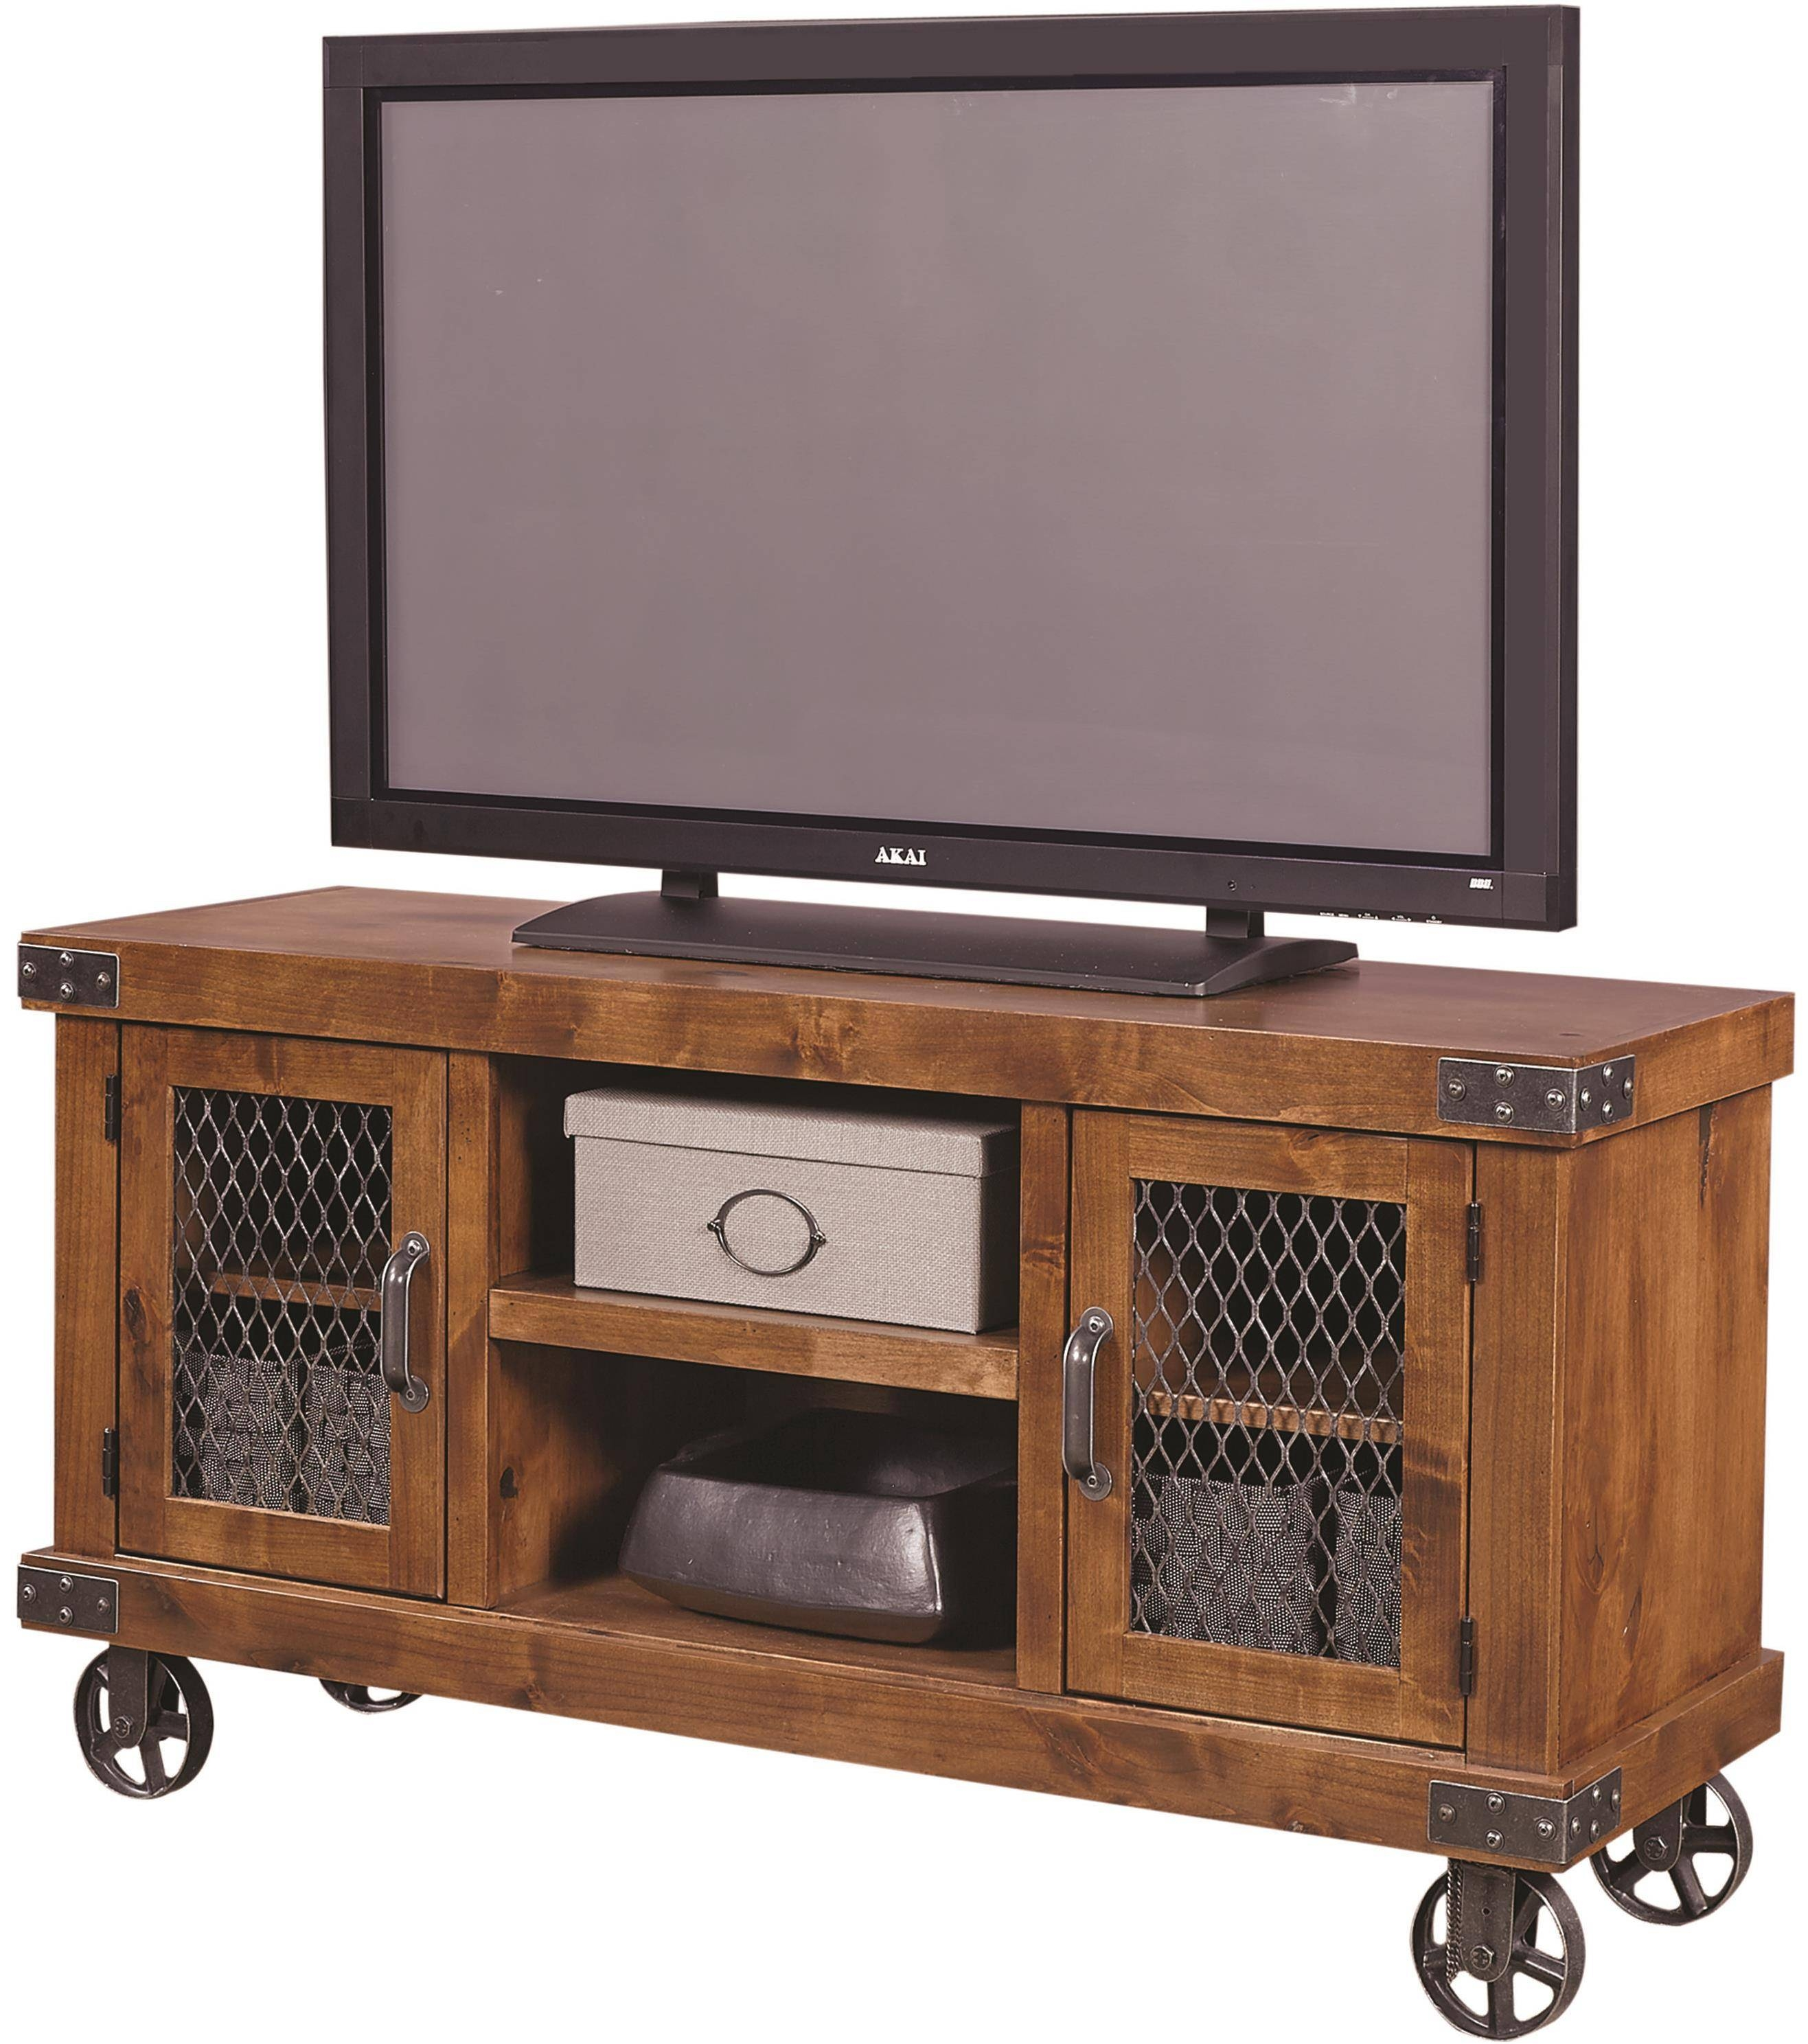 "Aspenhome Industrial 55"" Console With Metal Casters - Wayside with regard to Industrial Metal Tv Stands (Image 1 of 15)"